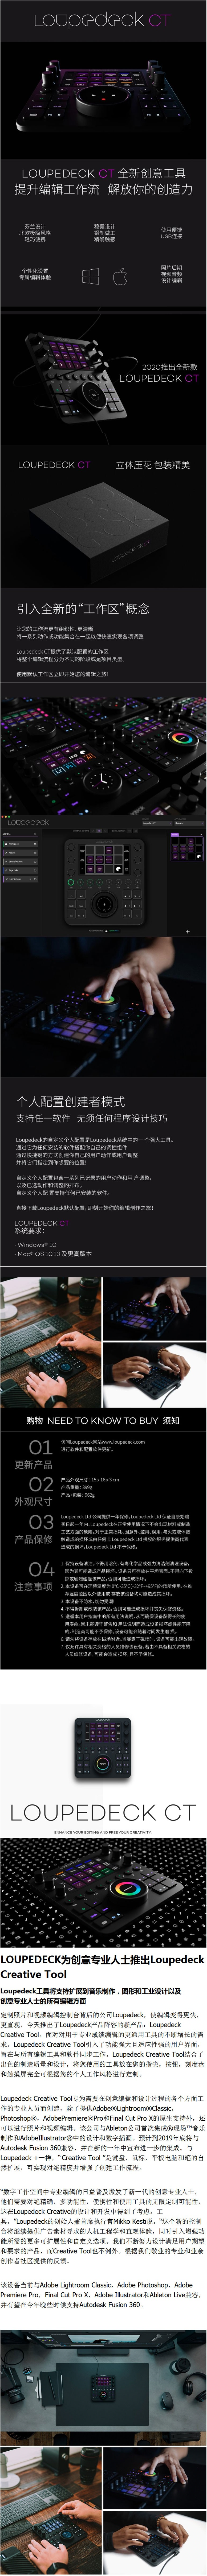 loupedeck-ct.png